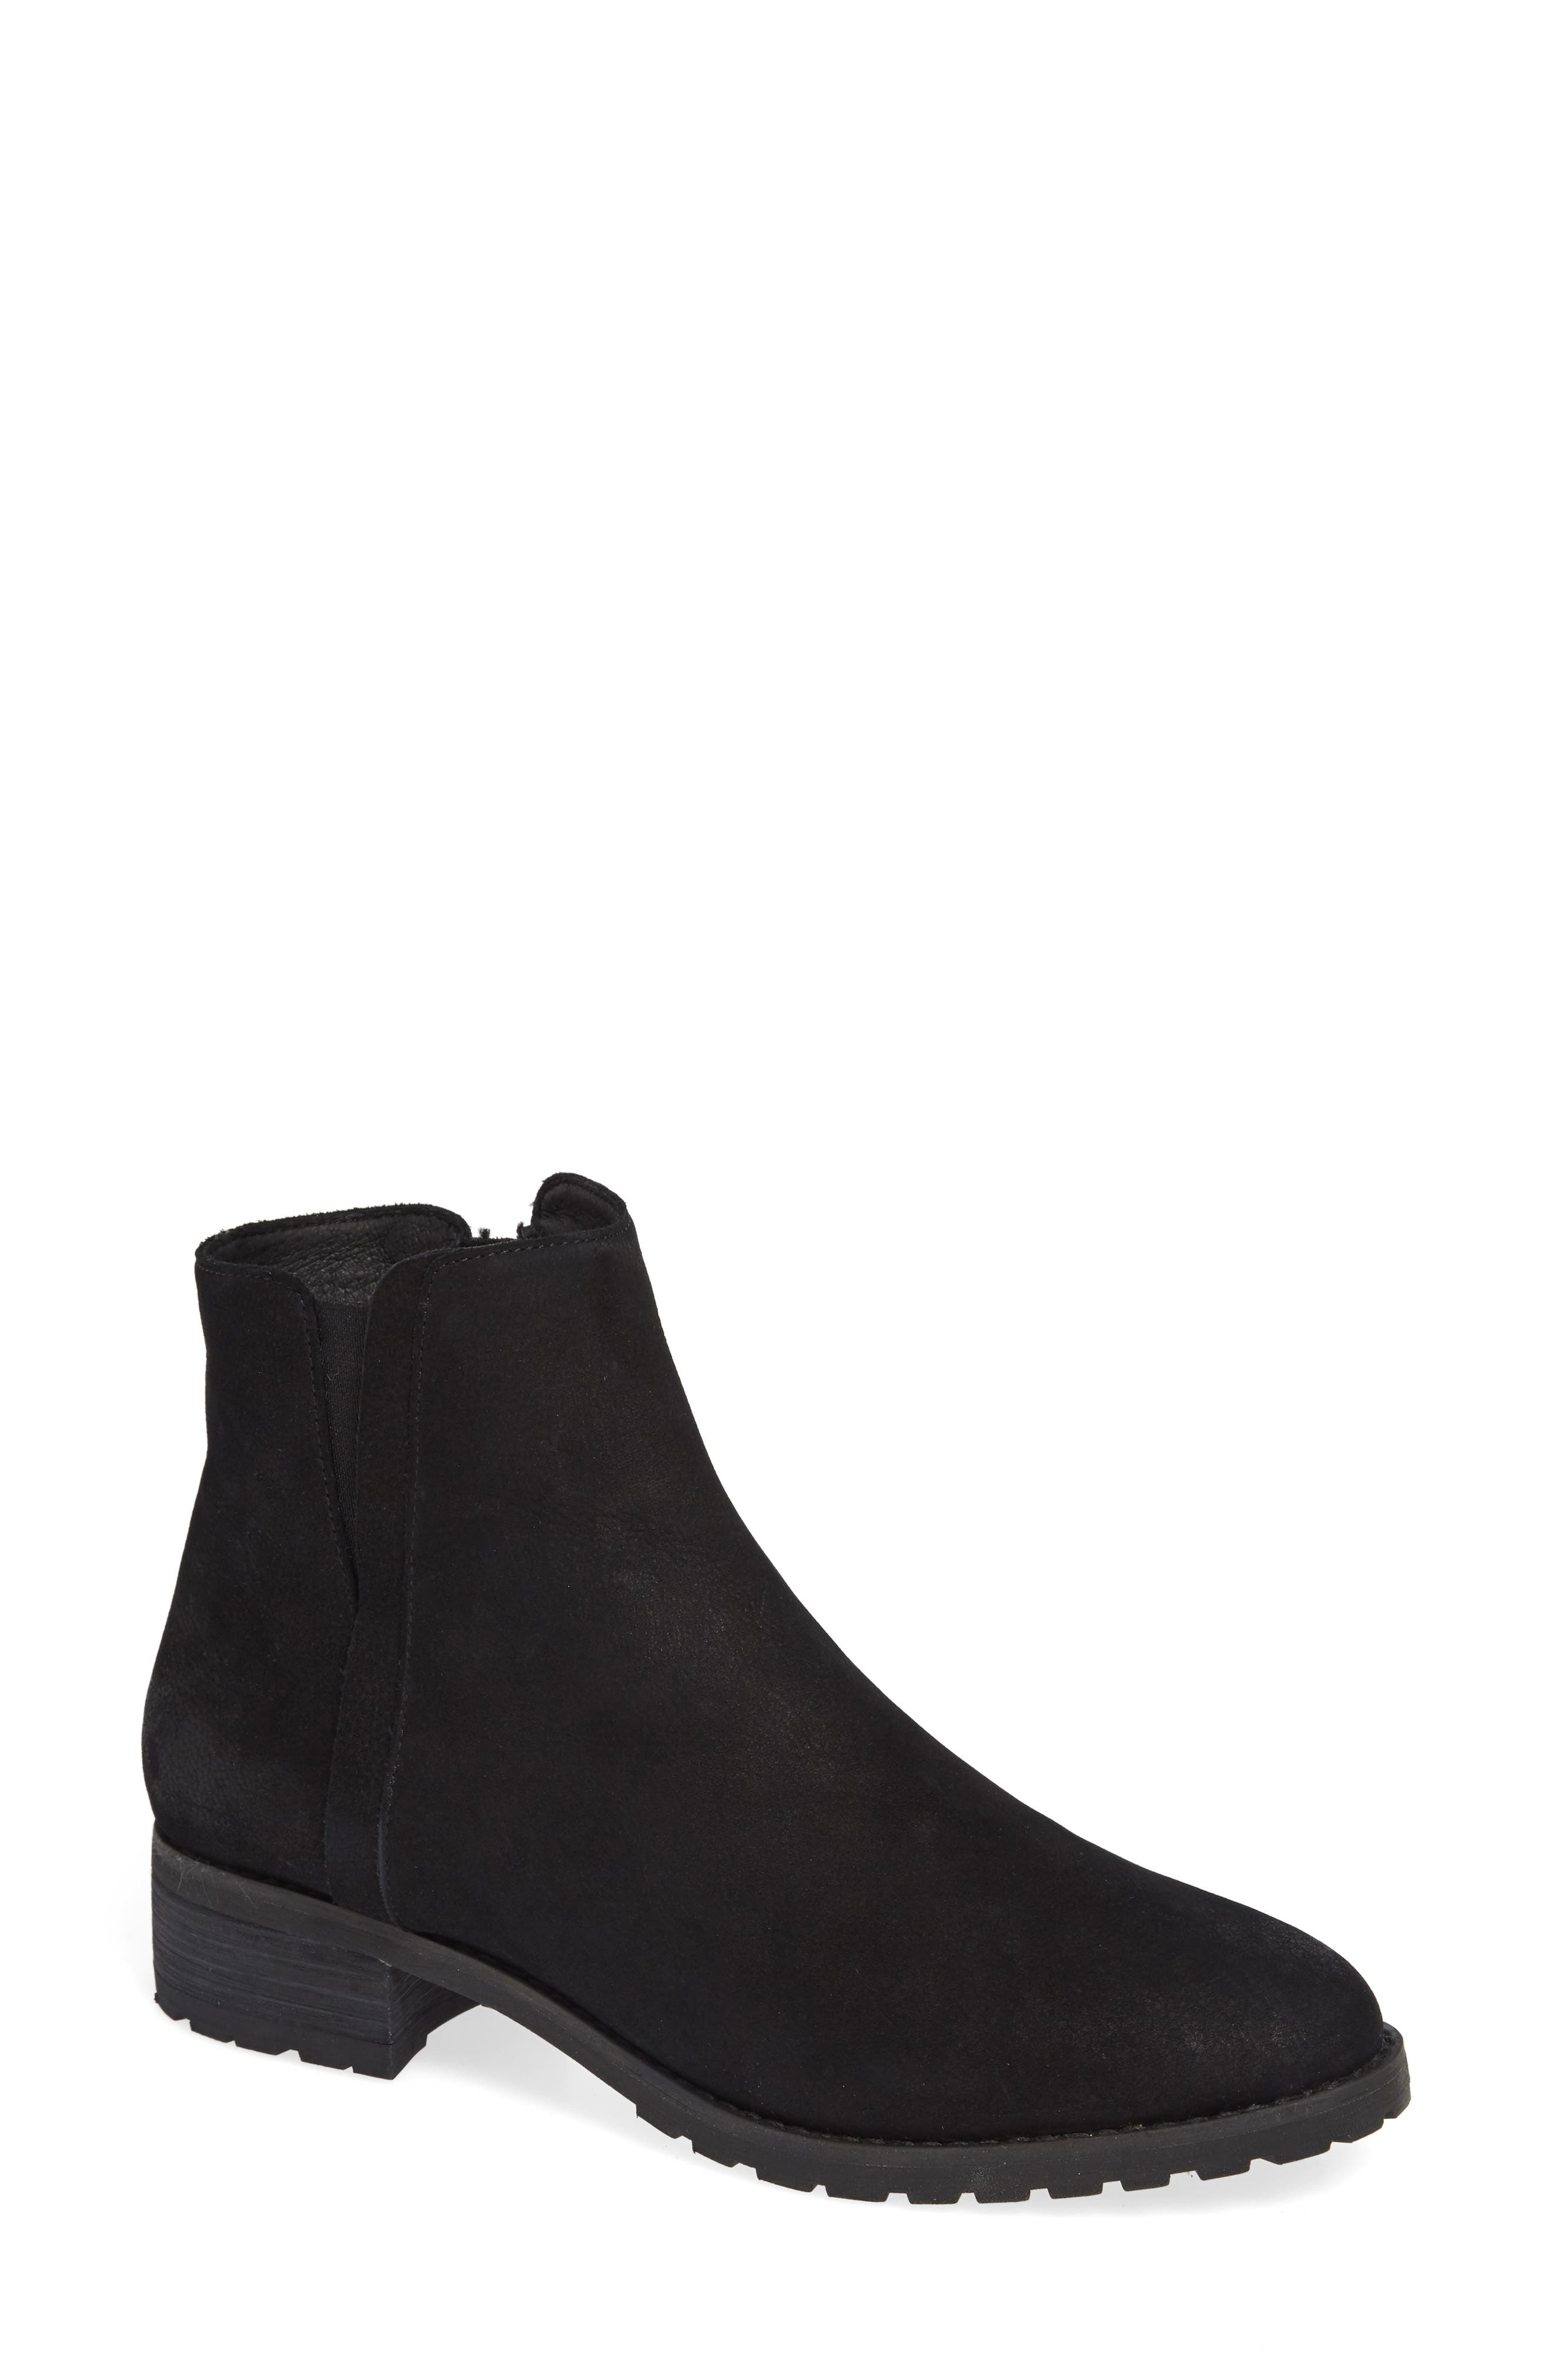 Ollie Water Resistant Bootie,                             Main thumbnail 1, color,                             BLACK OILED NUBUCK